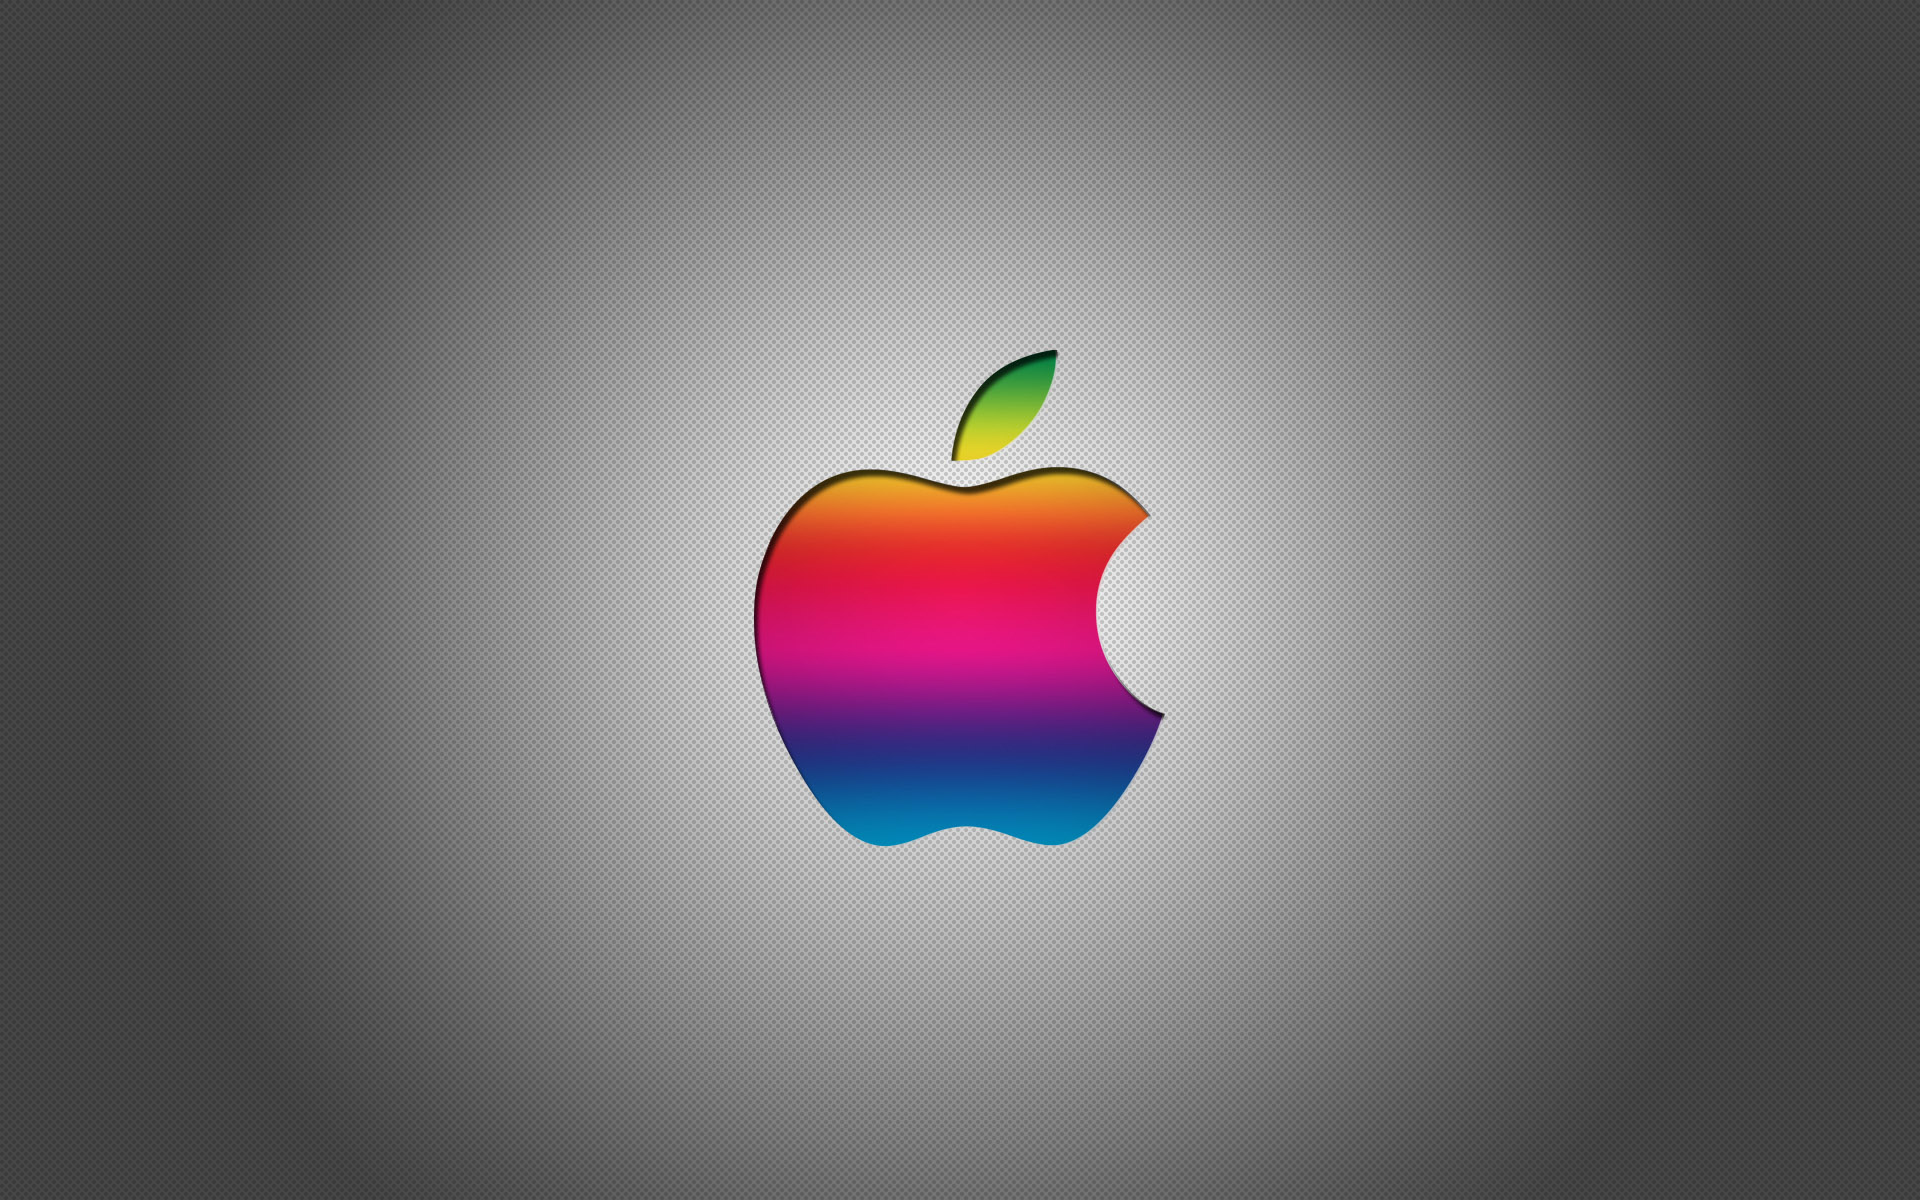 Cool Apple Backgrounds Mac Download HD Wallpapers 1920x1200